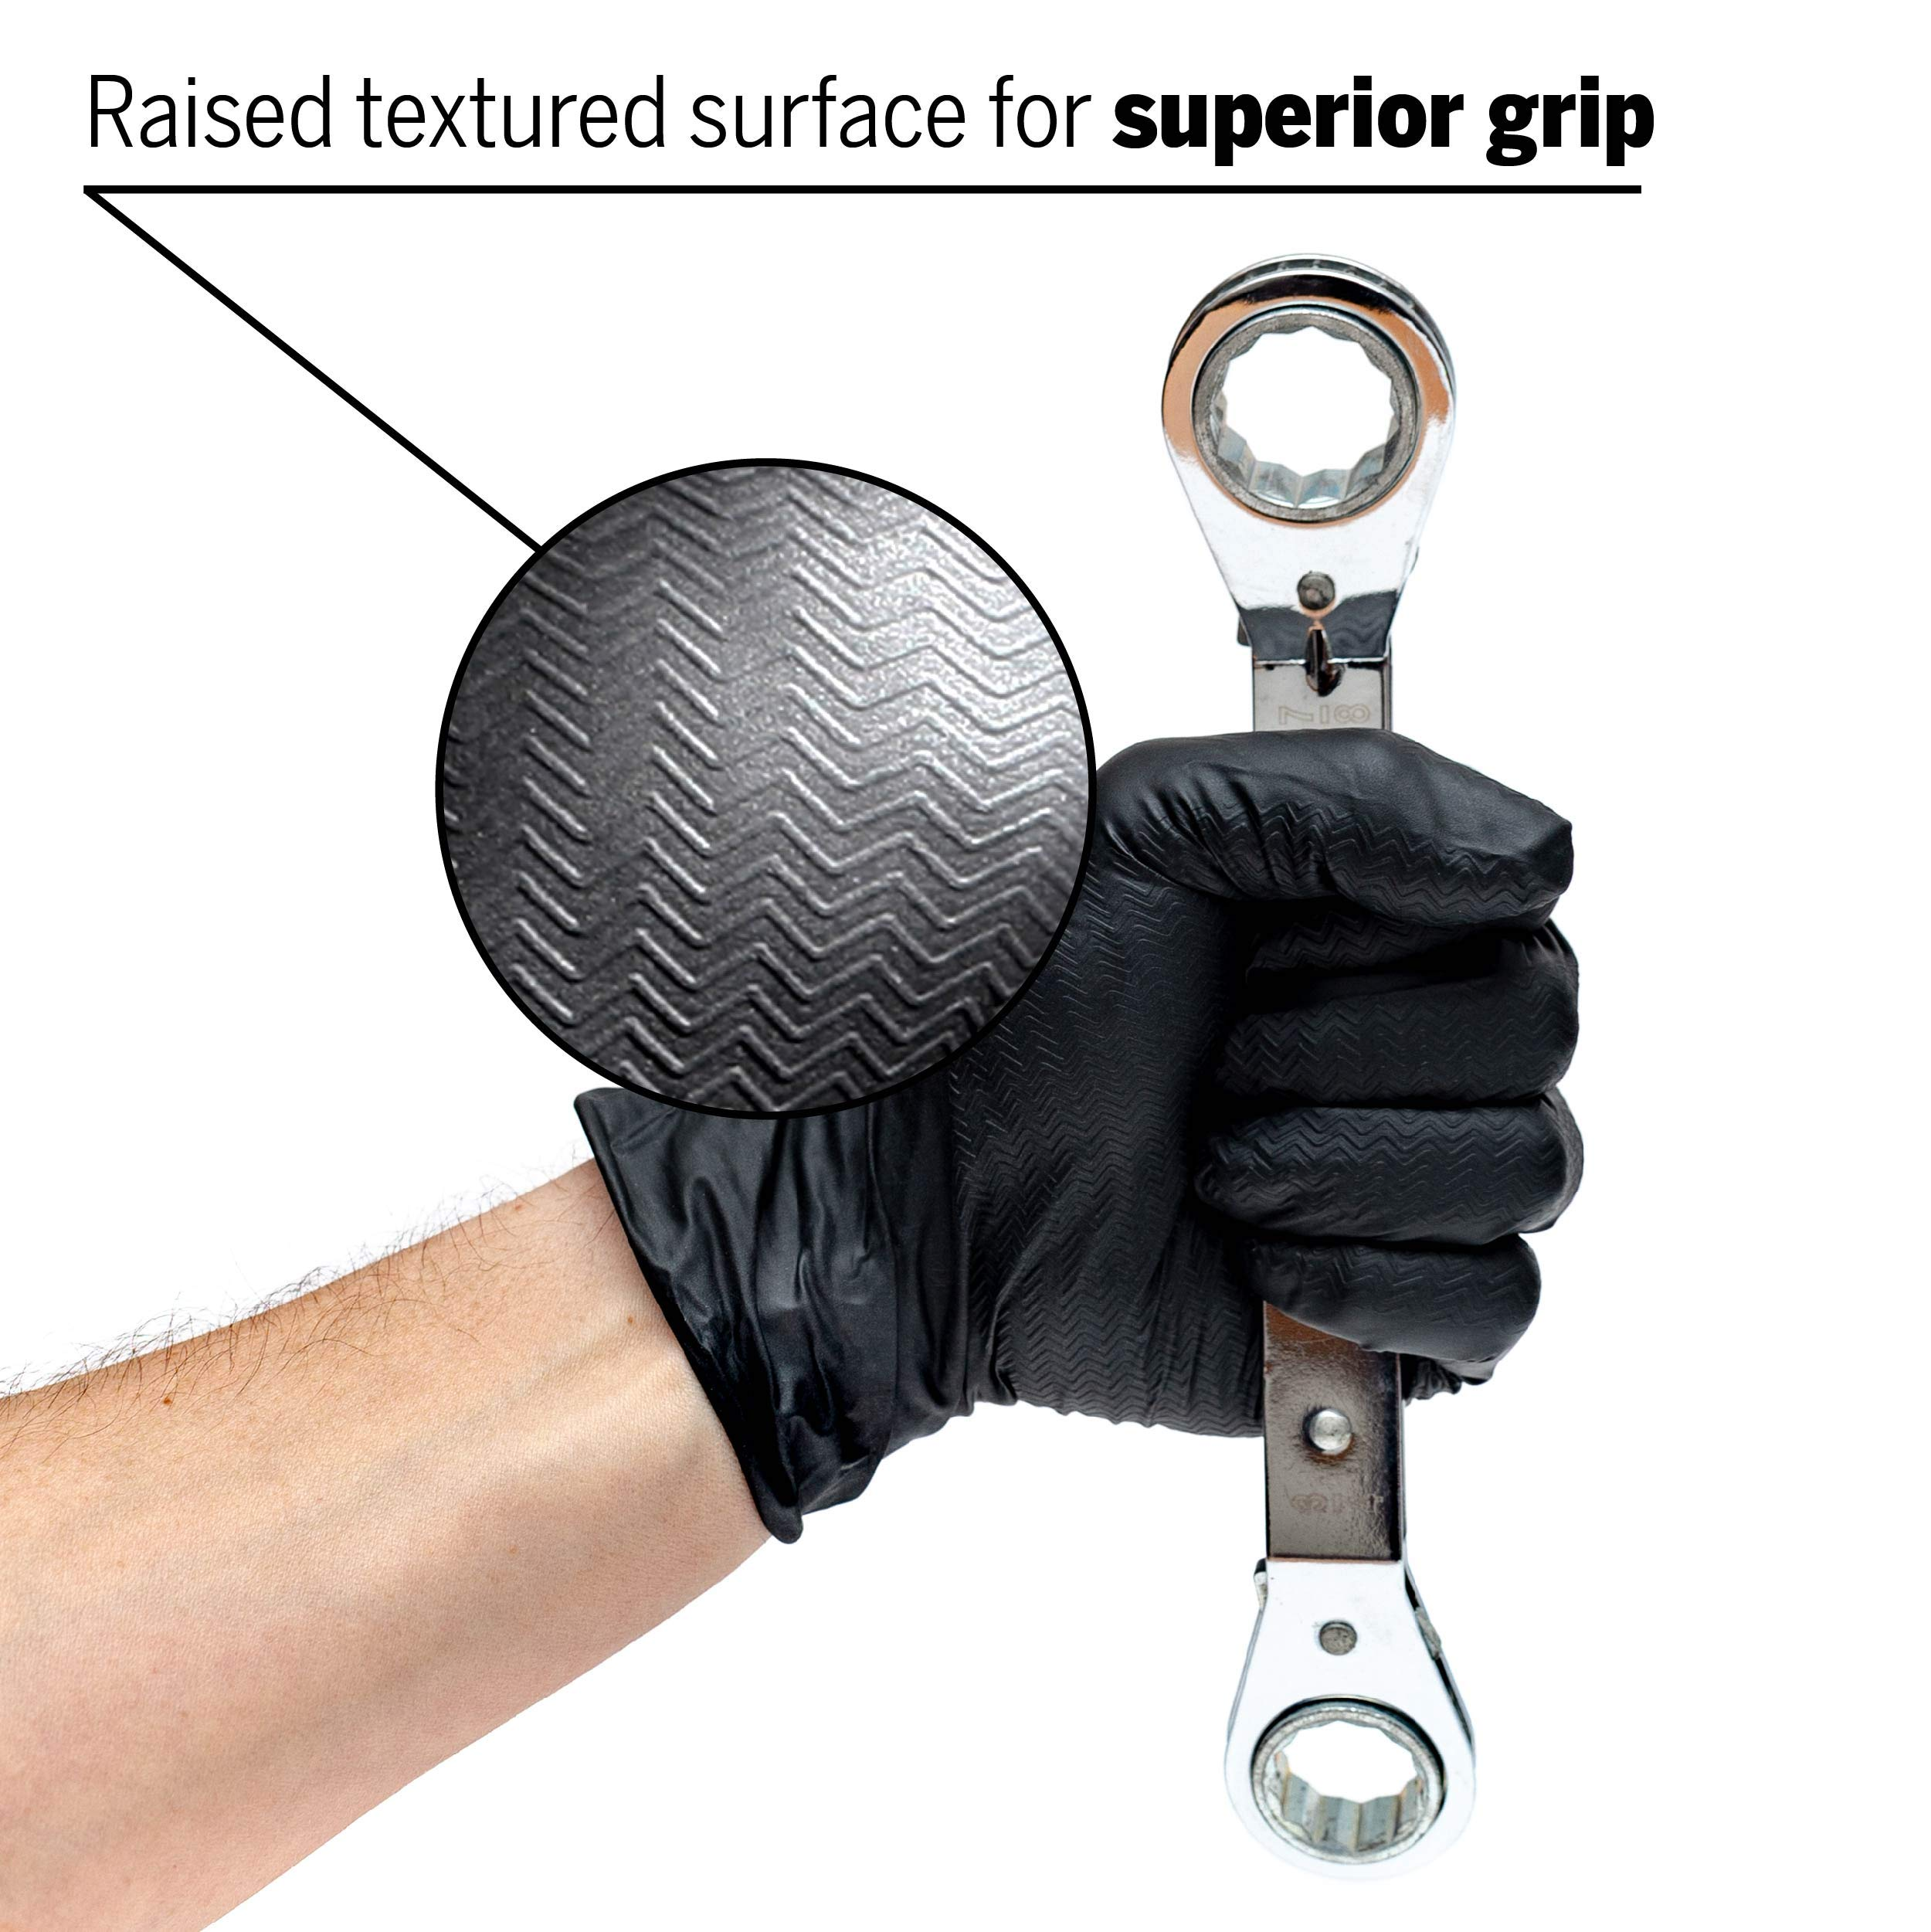 Lion Grip Black Disposable Nitrile Gloves, Medium, Case of 1000 - Superior Grip for Mechanics, Auto Hobbyists, Industrial & Manual Laborers, Cleaning Work & More EPPCO 95005 by EPPCO Enterprises (Image #2)